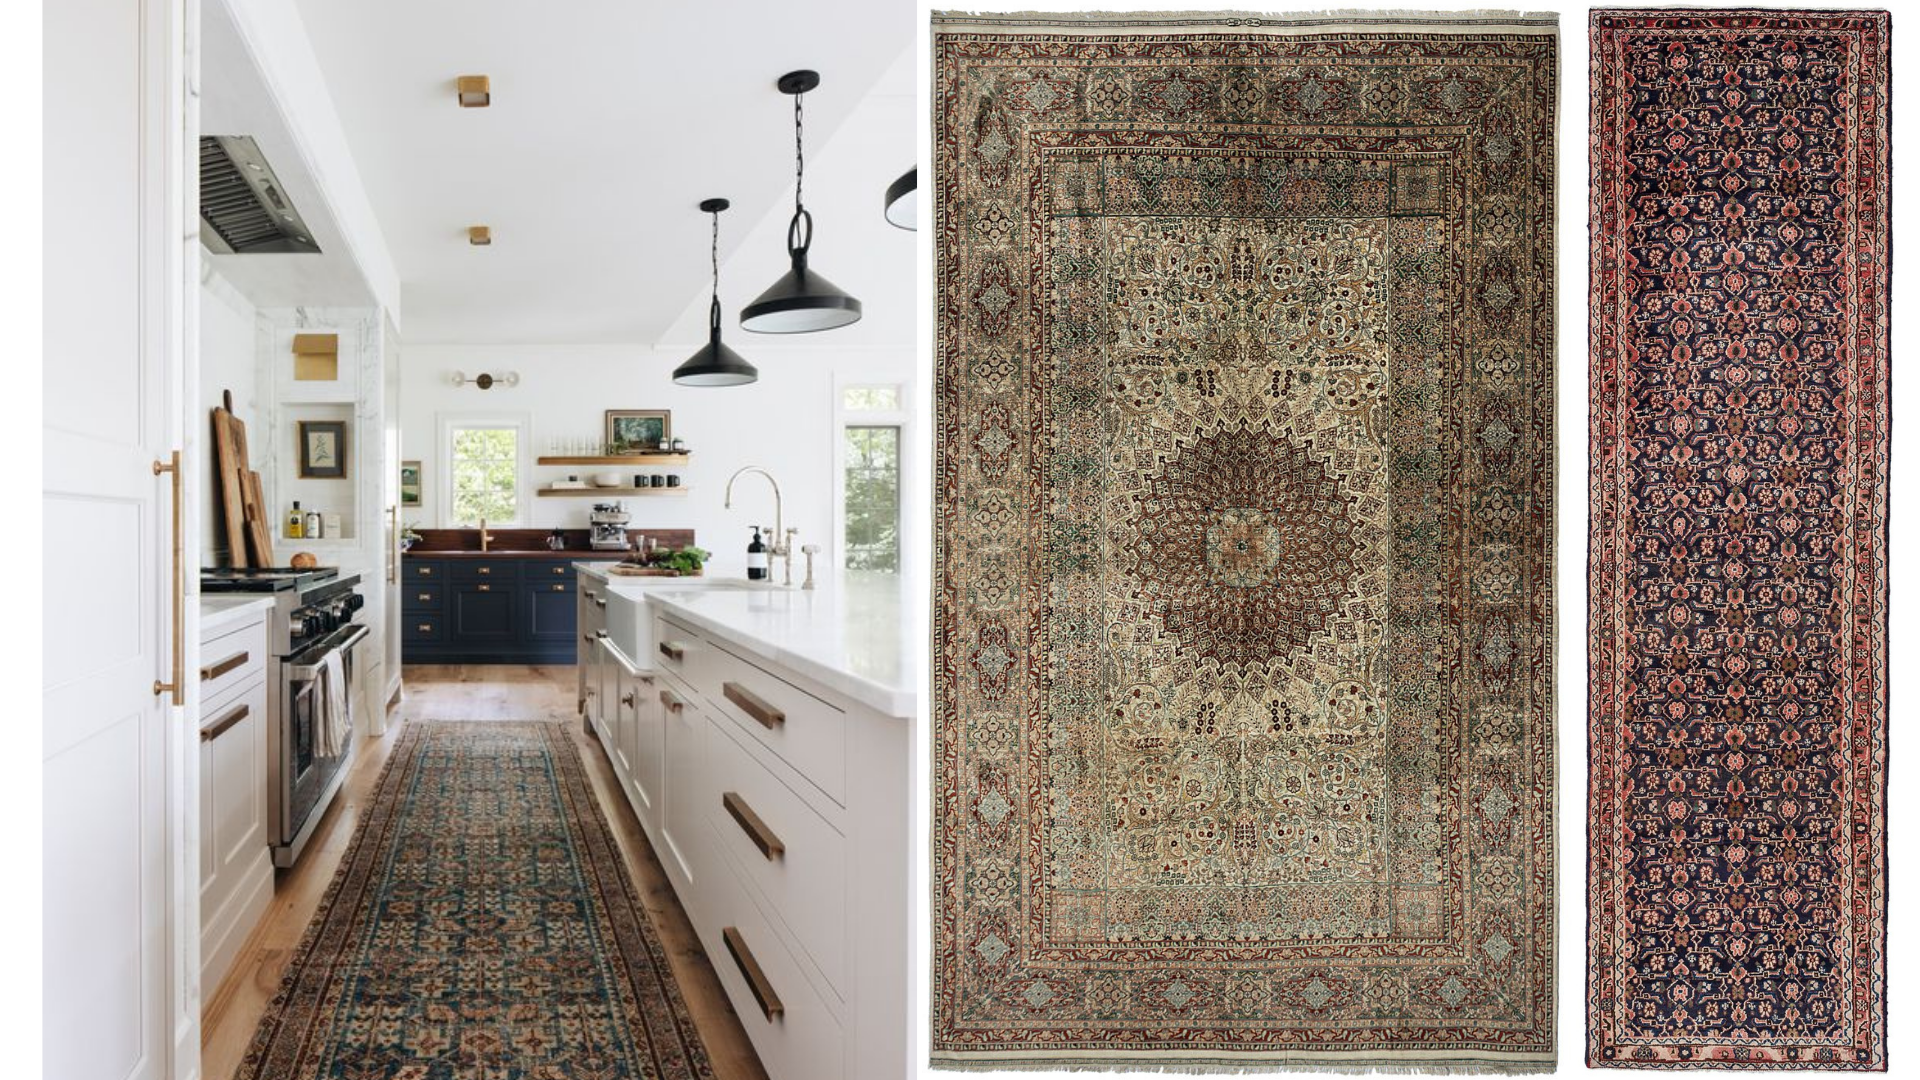 persian rugs, oriental rugs, runners, home decor, home accessories, interior design, design ideas, interior designers, small kitchen design ideas, inspiration